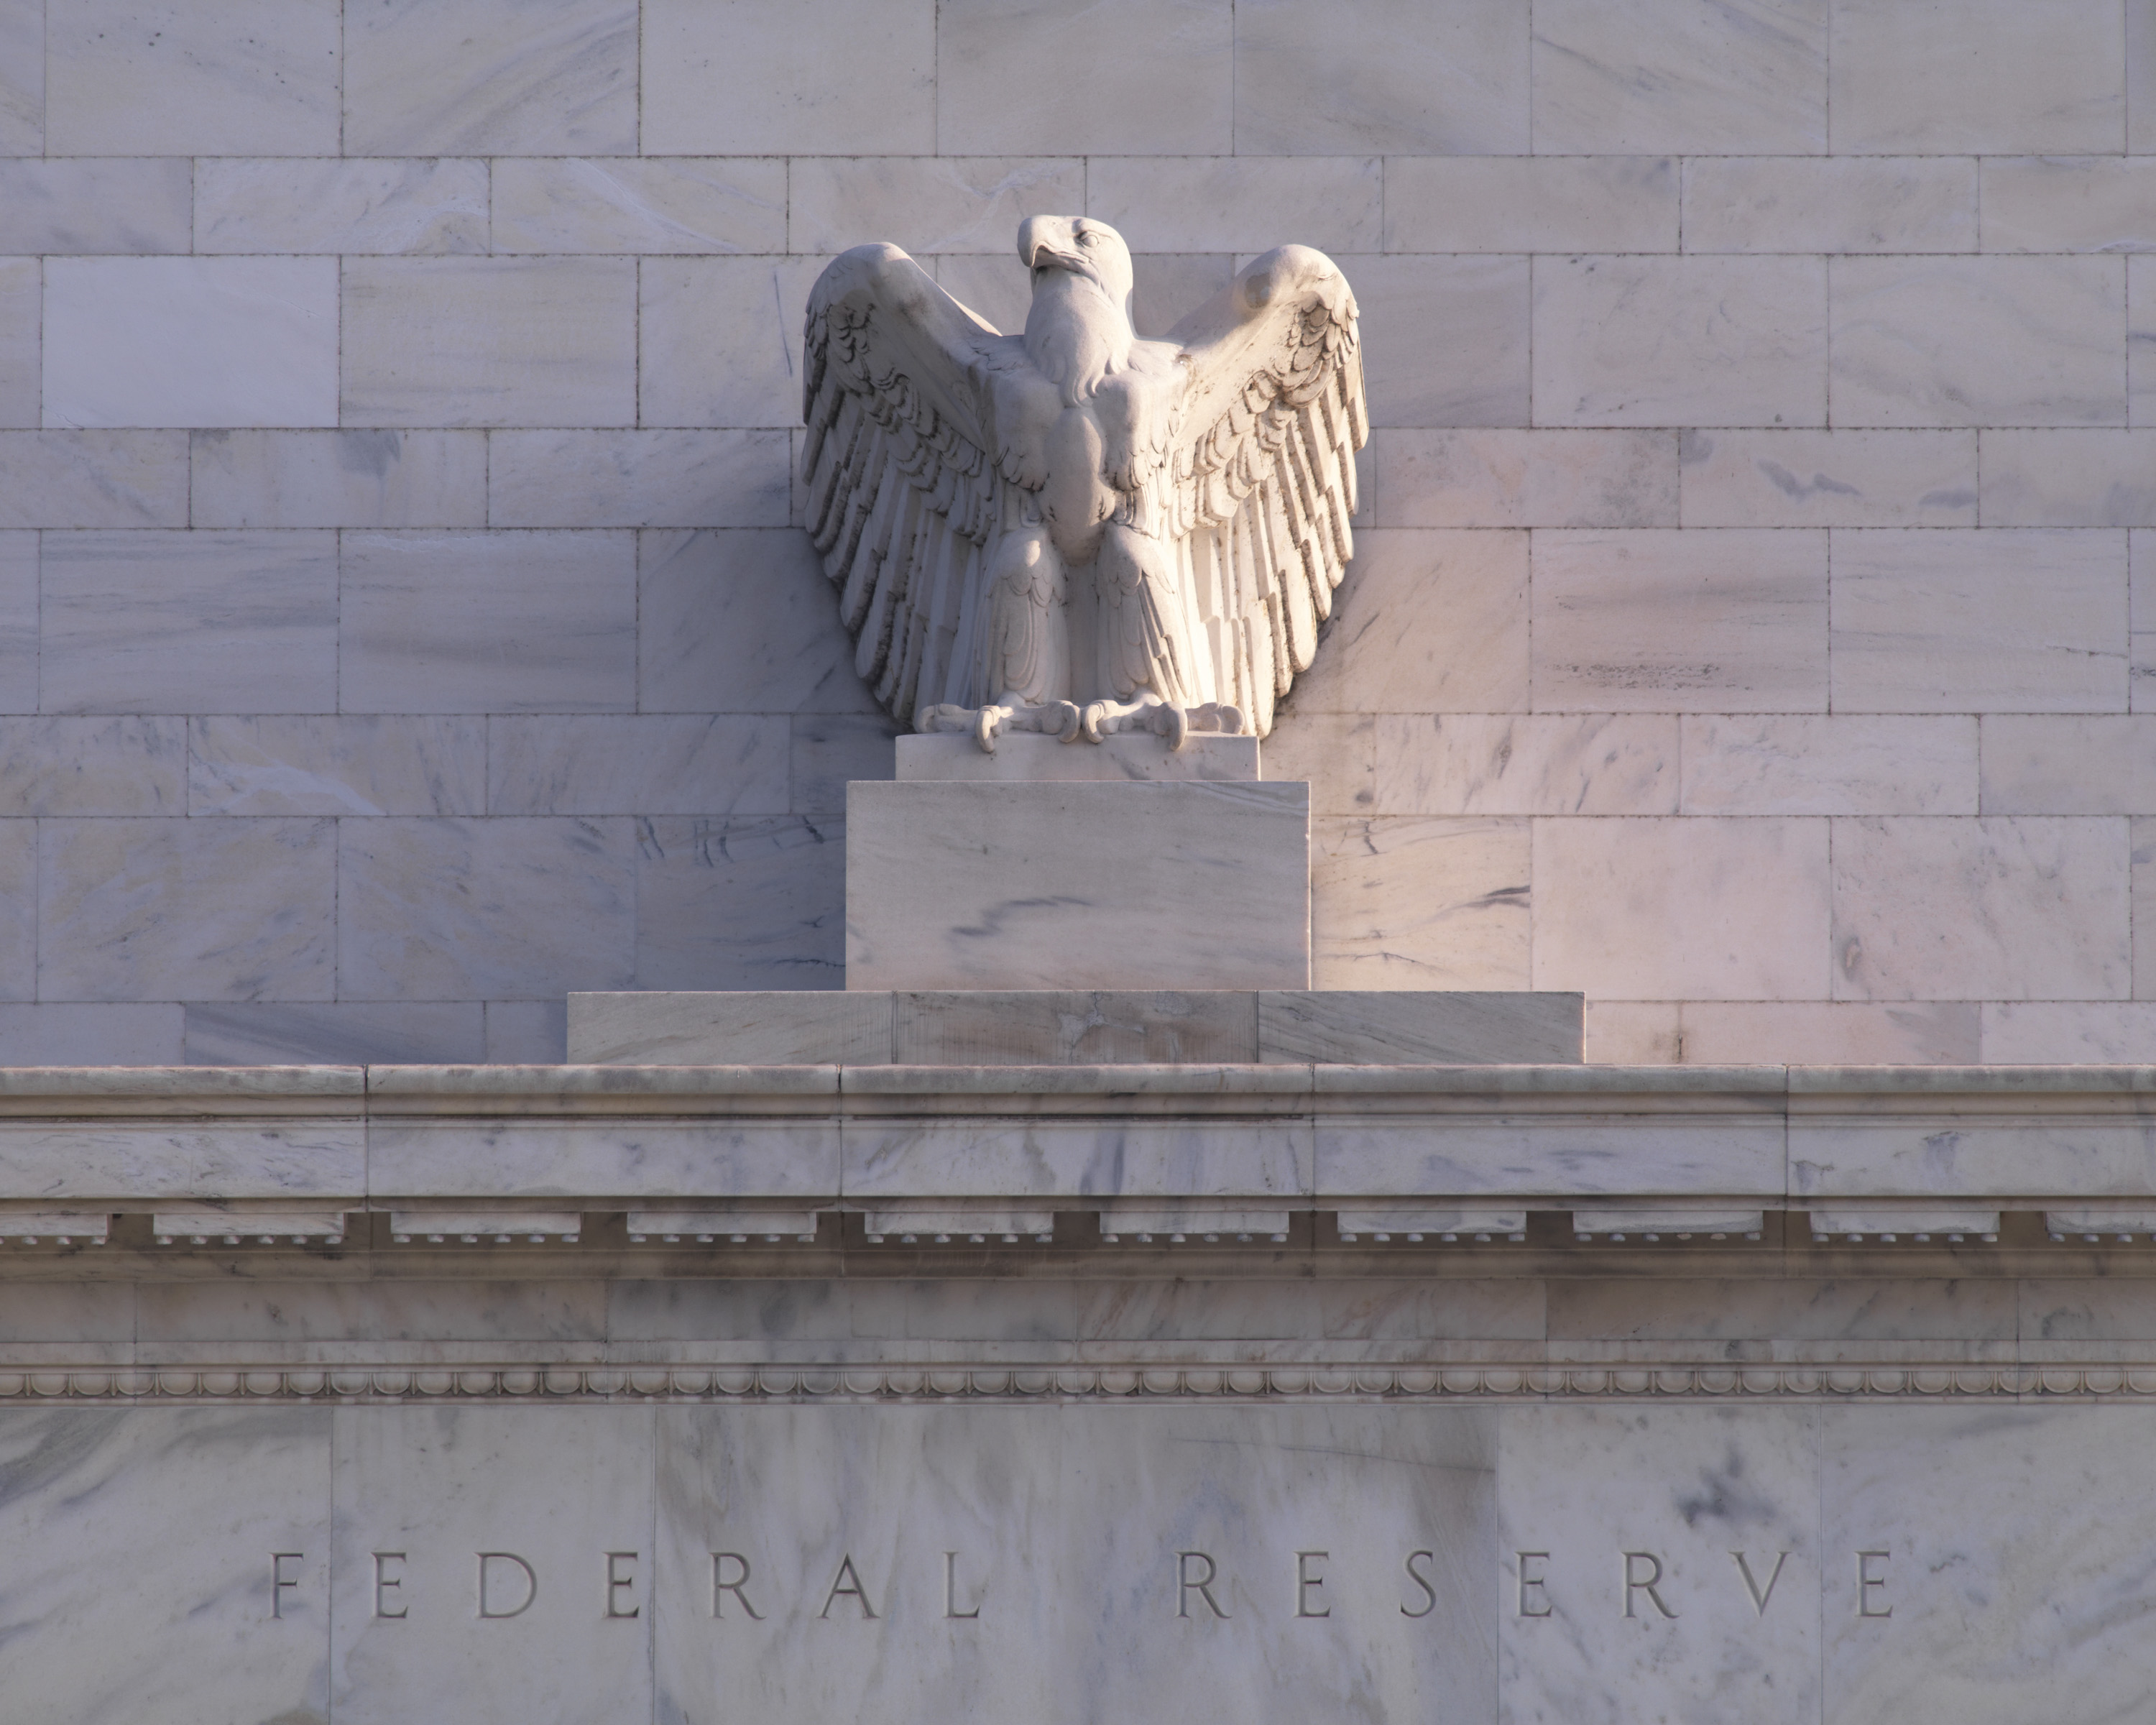 Federal Reserve's Latest Bailouts More Proof Bad Times Ahead